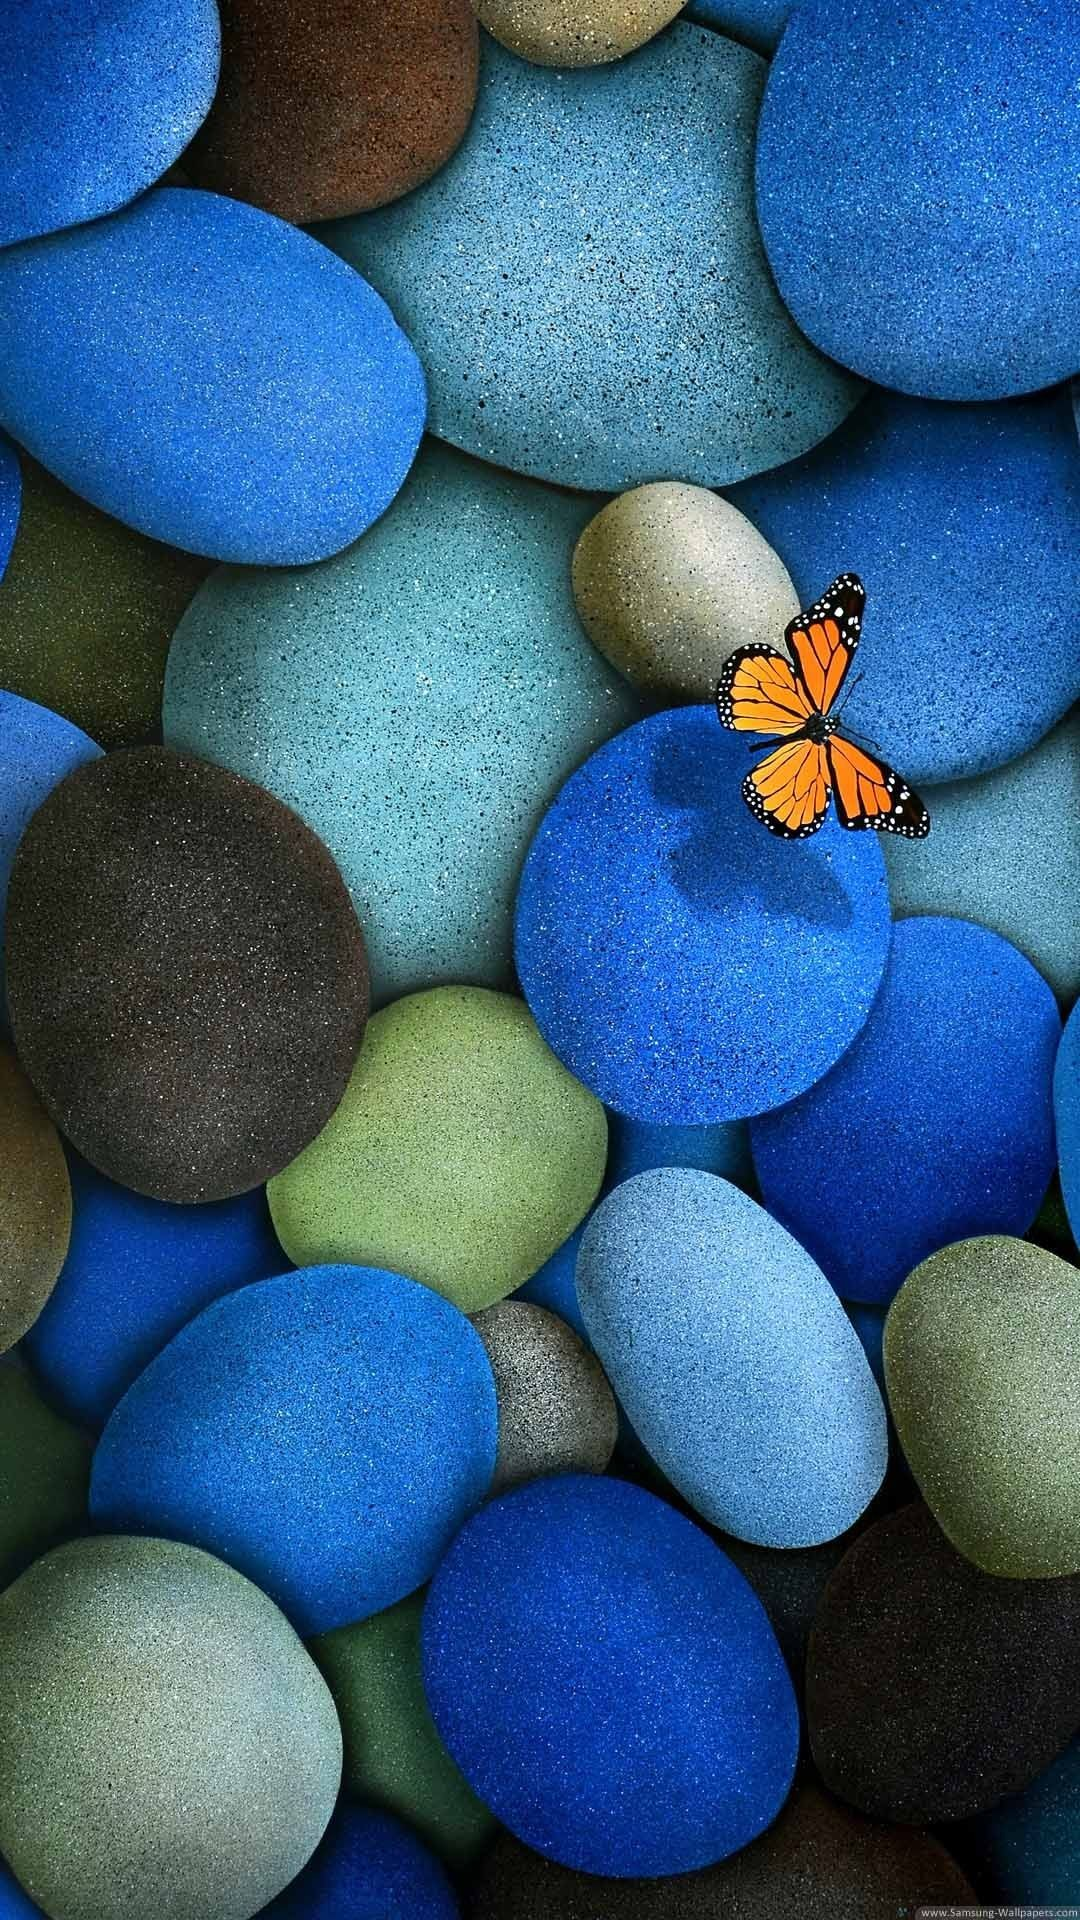 1080x1920 Free background images hd for mobile Download - Colorful Stone Best Hd  Iphone New Wallpapers Background Iphone intended for Free background images  hd for ...